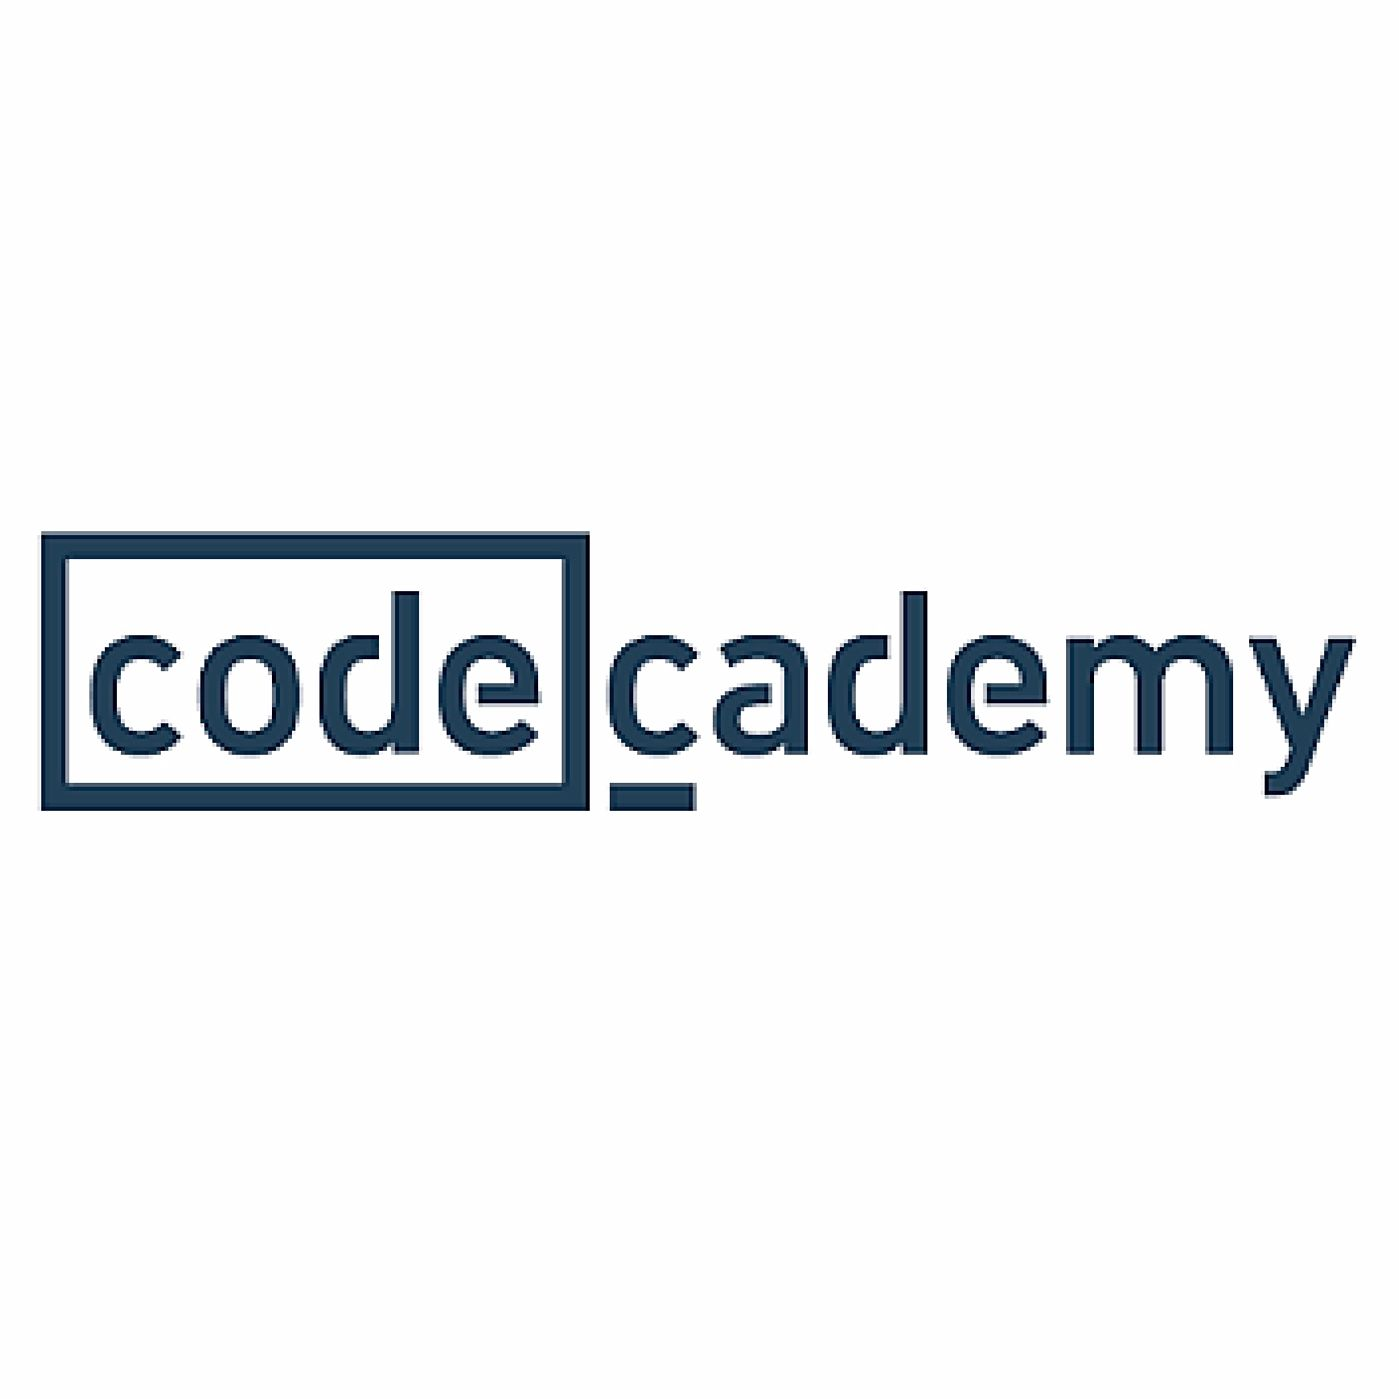 Codeacademy Receives $30 Million Investment Lead By Naspers Ventures